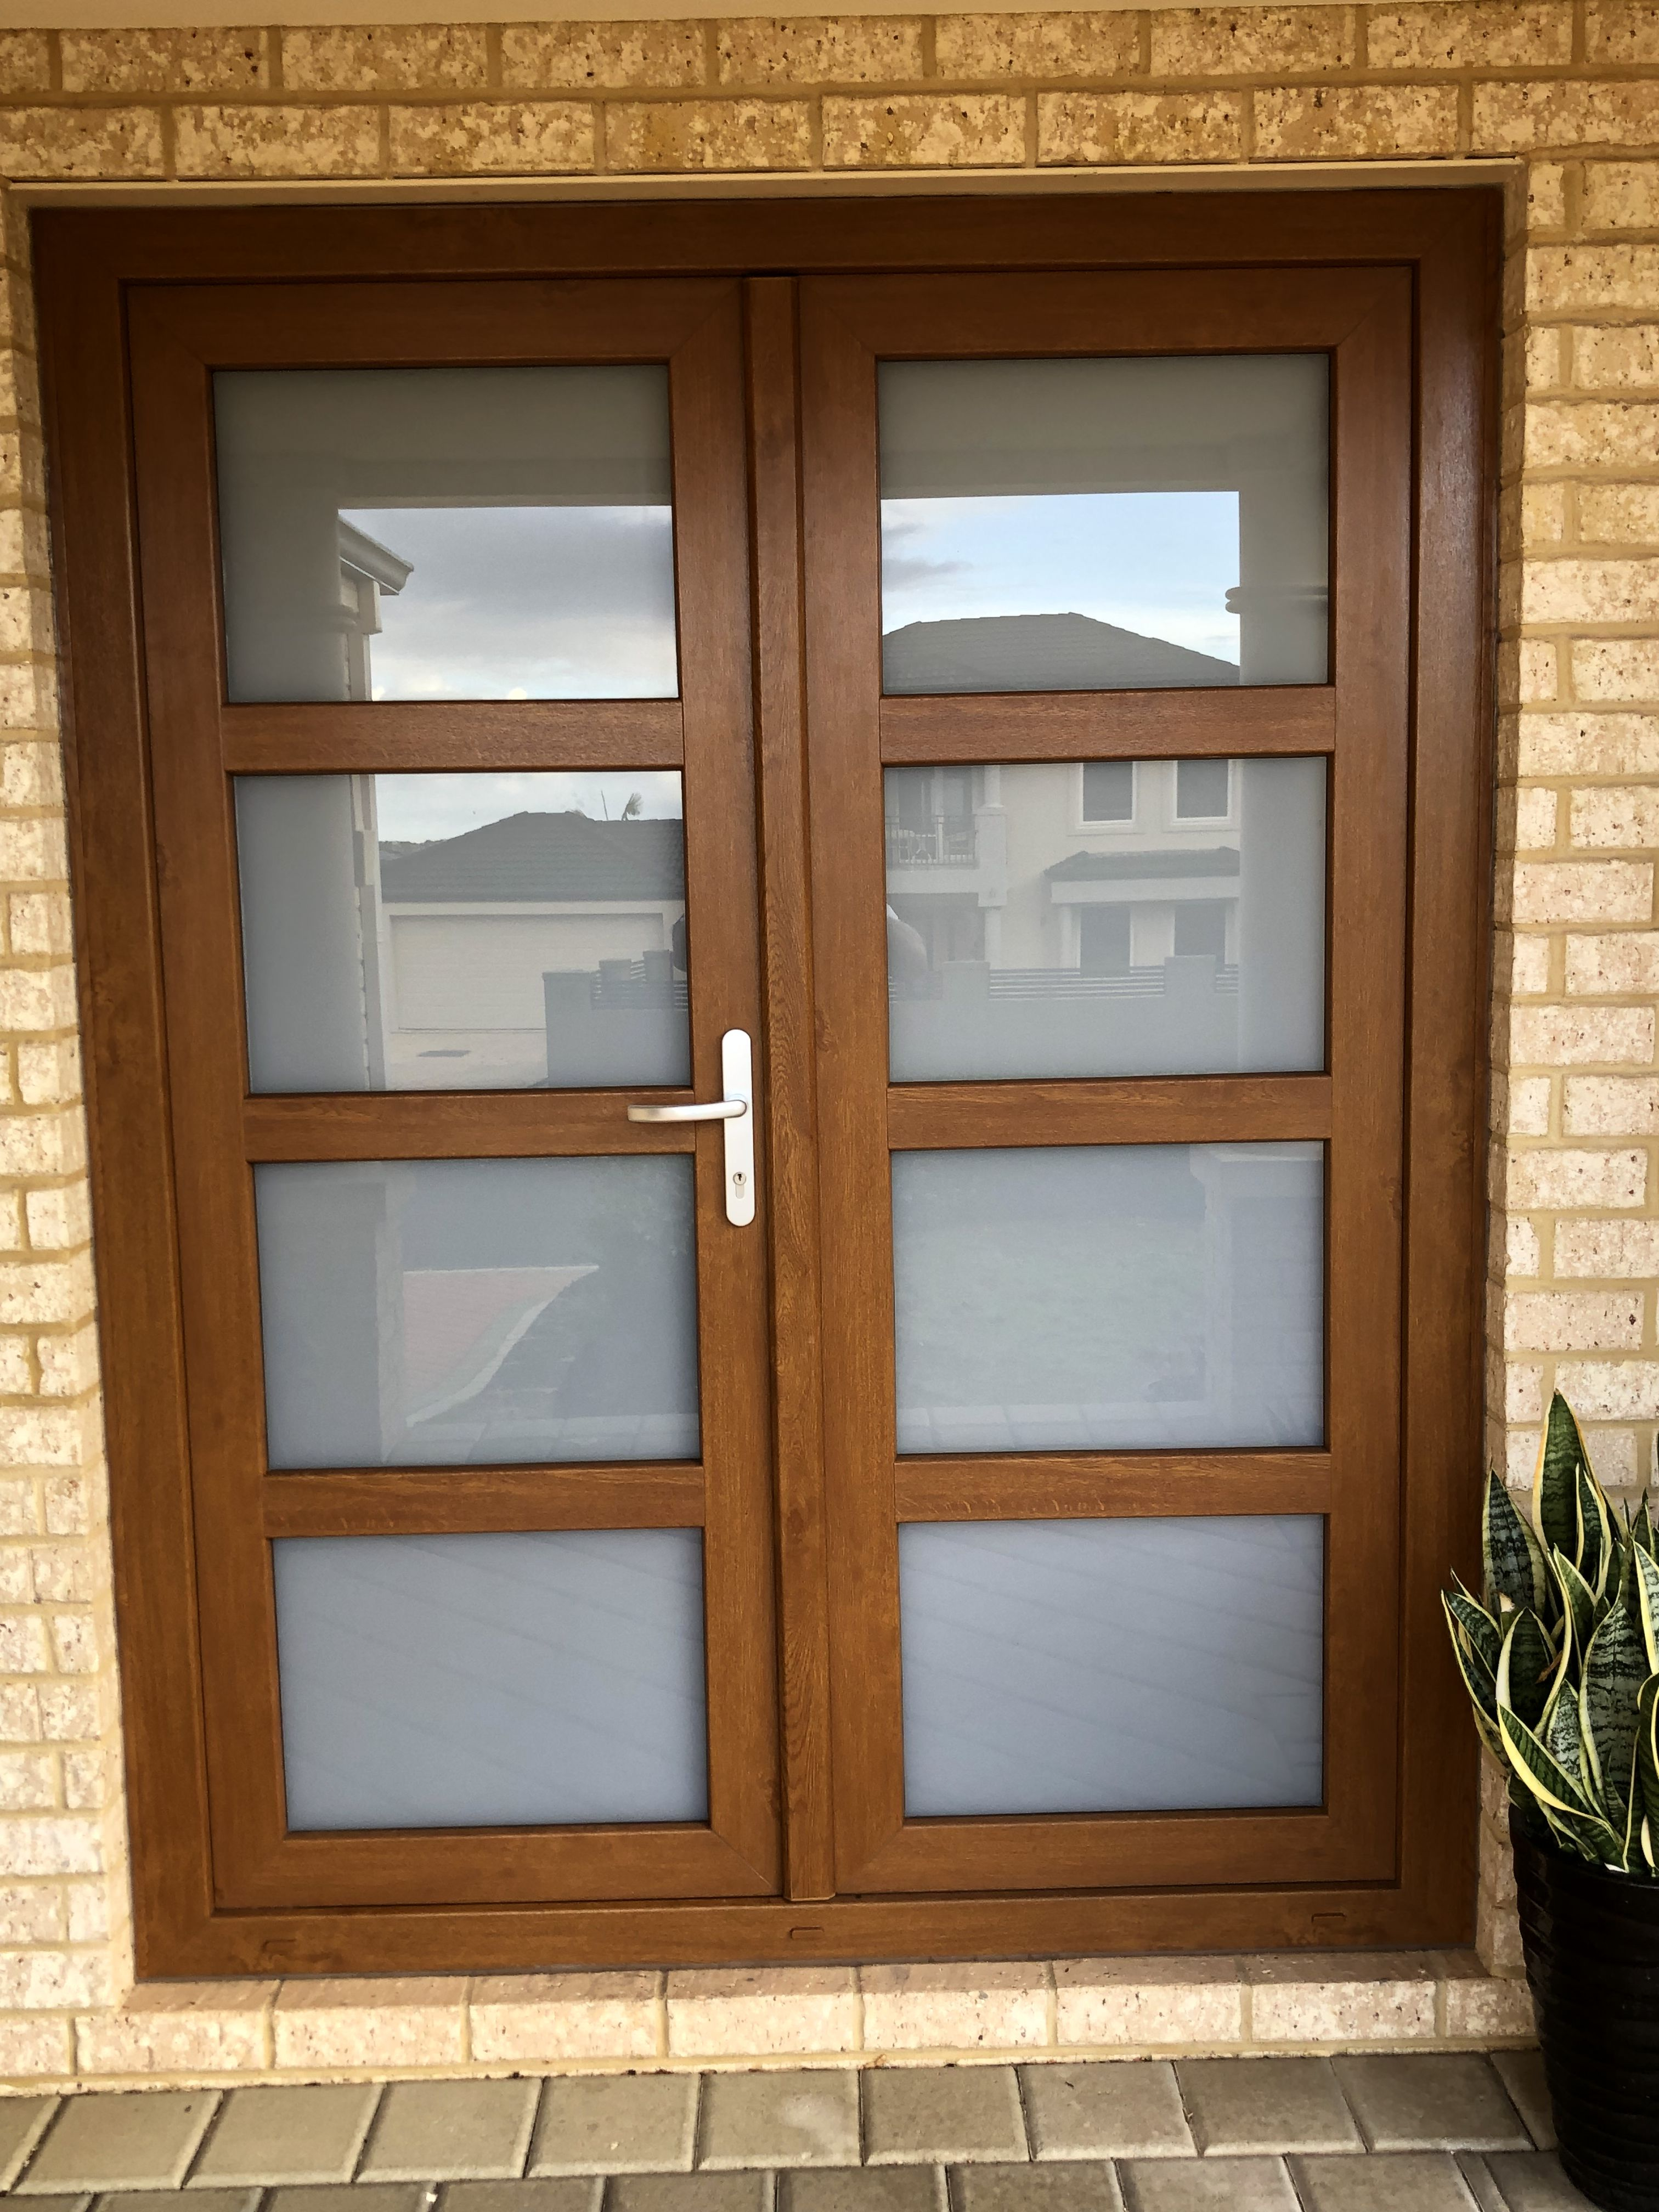 Upvc Double Glazed Doors By Affordable Double Glazing Double Glazed Front Doors Double Glazing Upvc Patio Doors